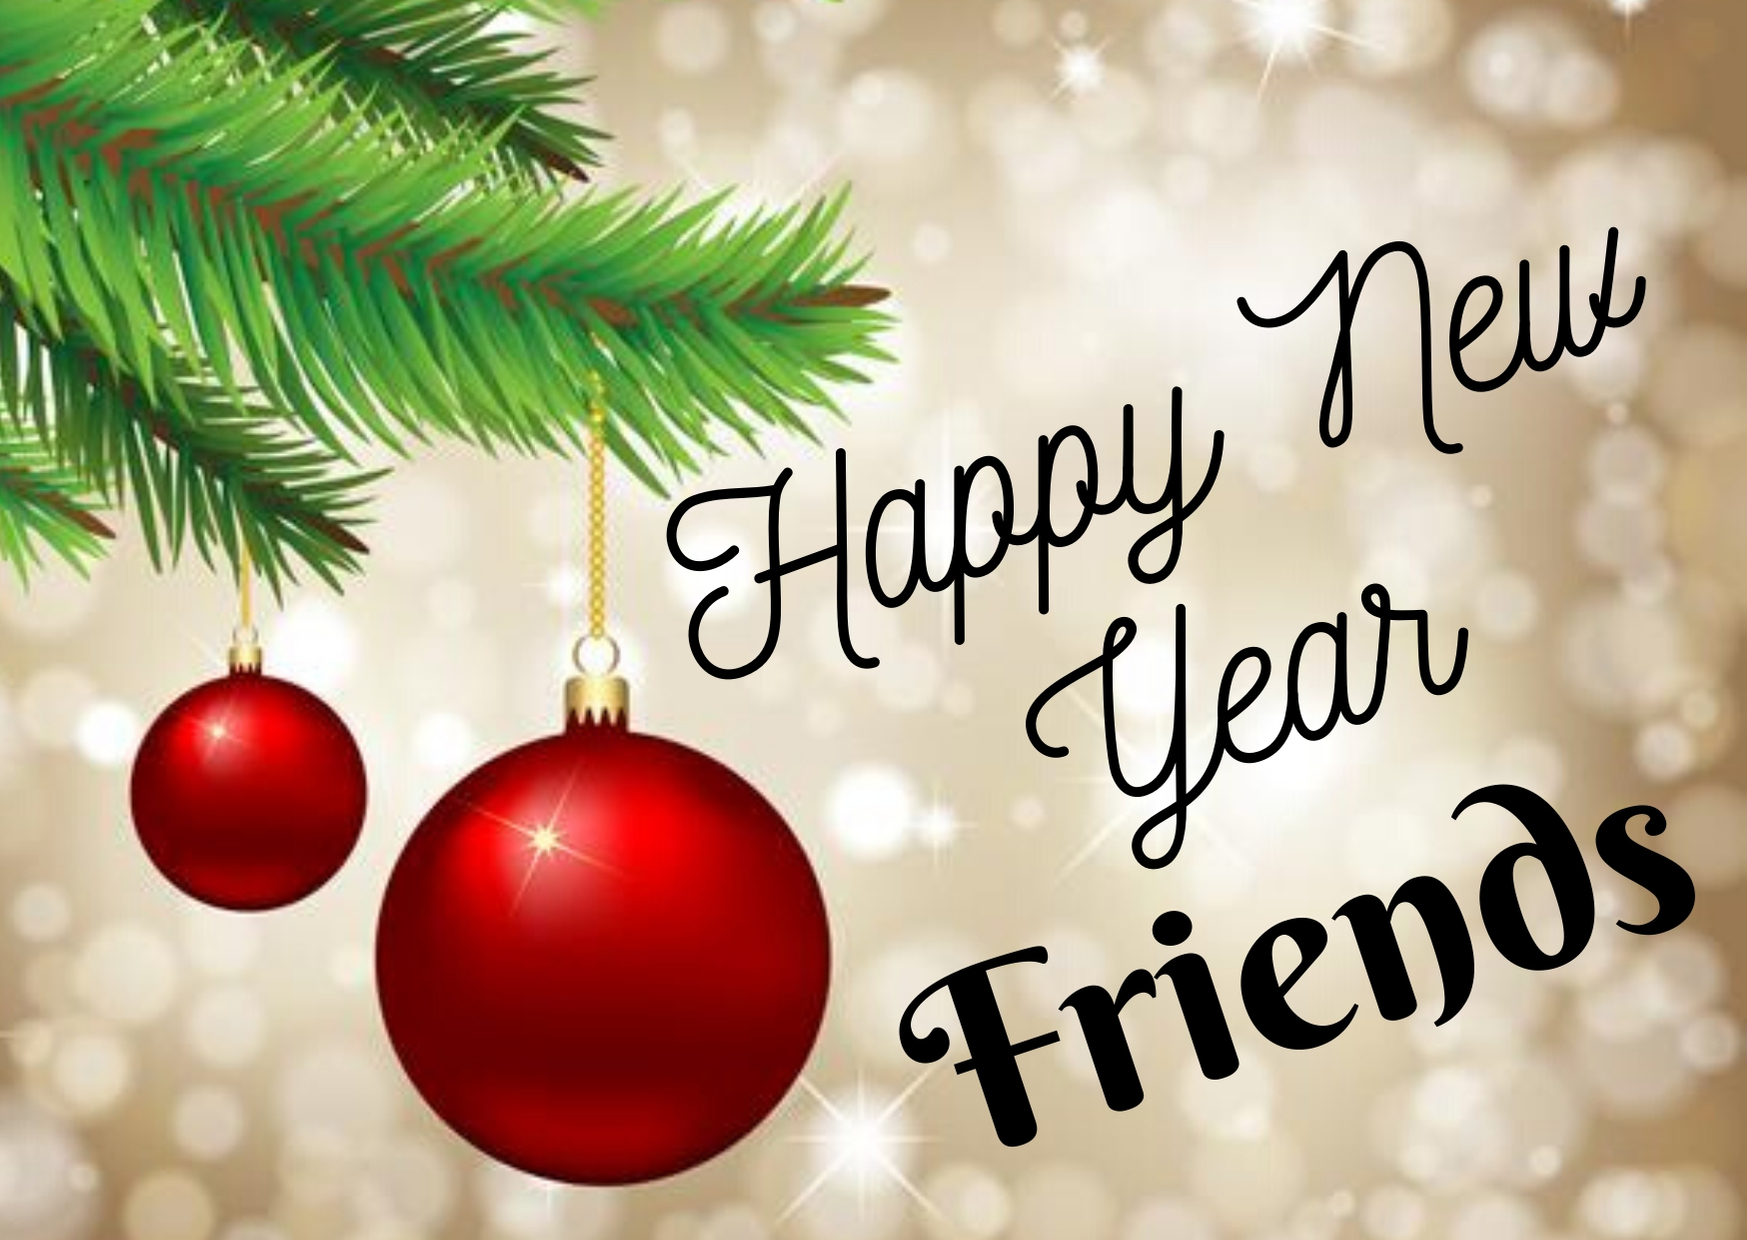 happy new year message friend, happy new year 2021 friend, happy new year 2021 wishes for friends and family